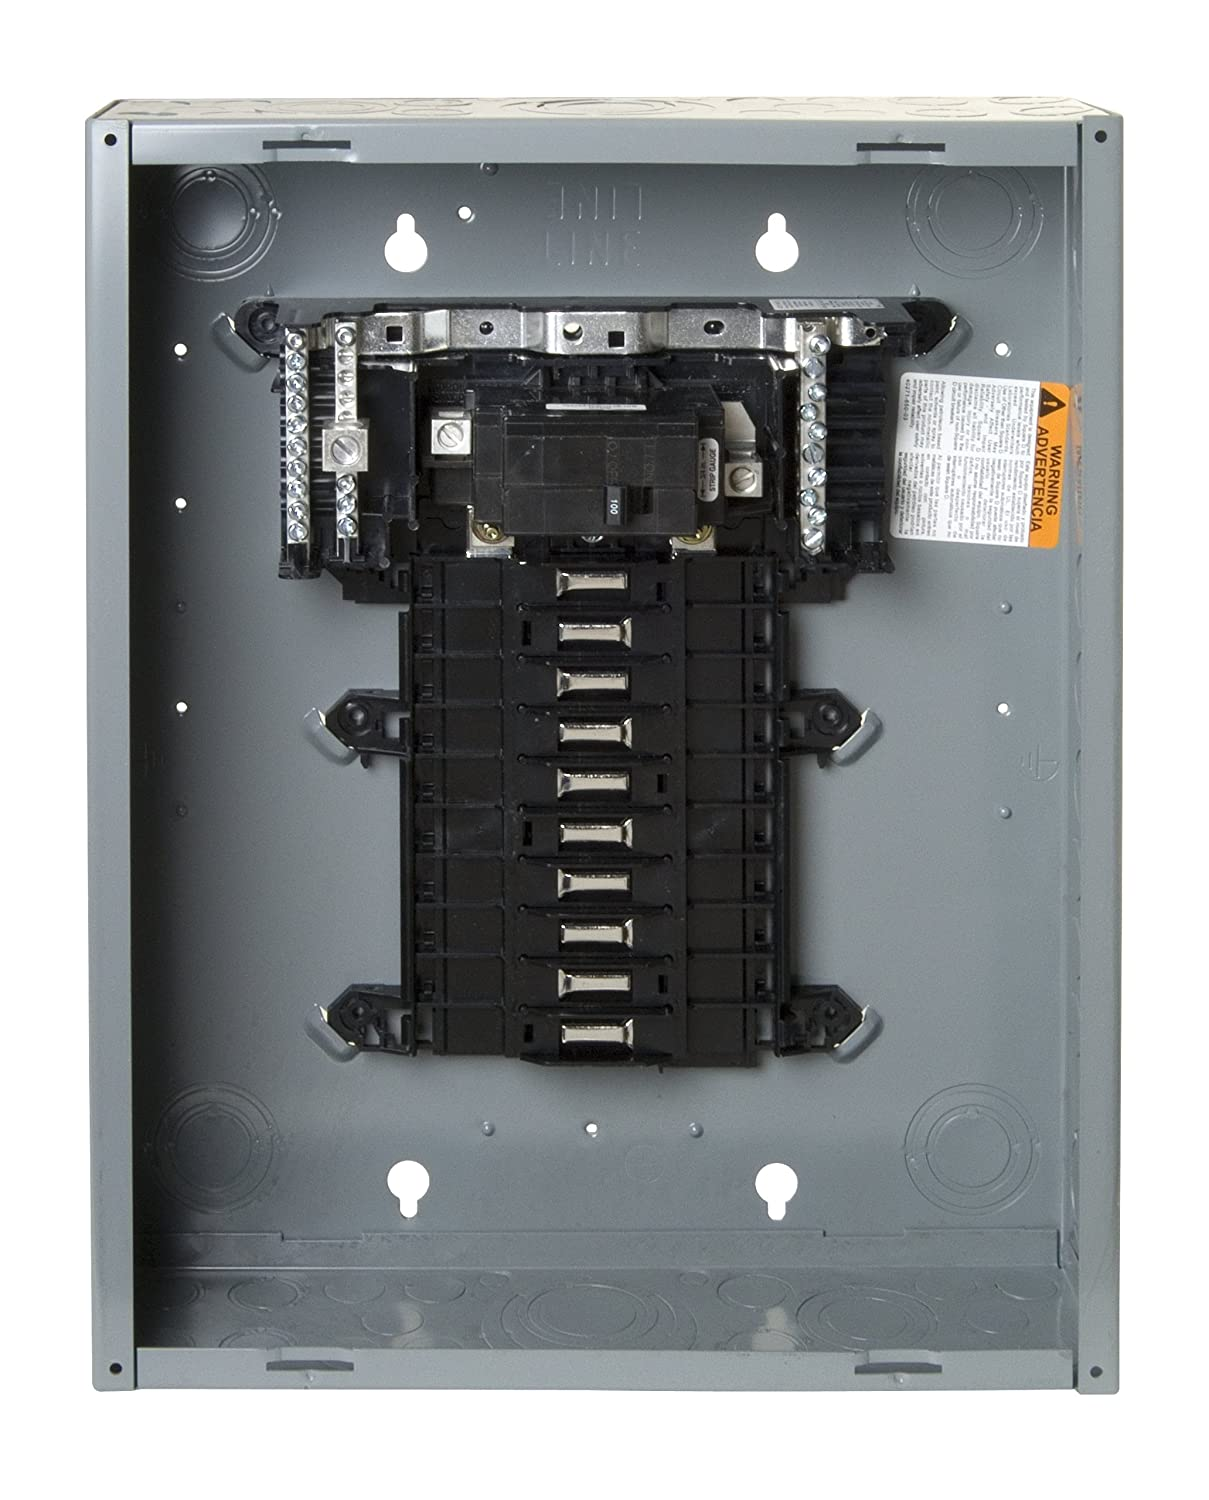 Square D By Schneider Electric Qo120m100c Qo 100 Amp 20 Space Shop Eaton 20circuit 10space 100amp Main Breaker Load Center Value Circuit Indoor With Cover Breakers